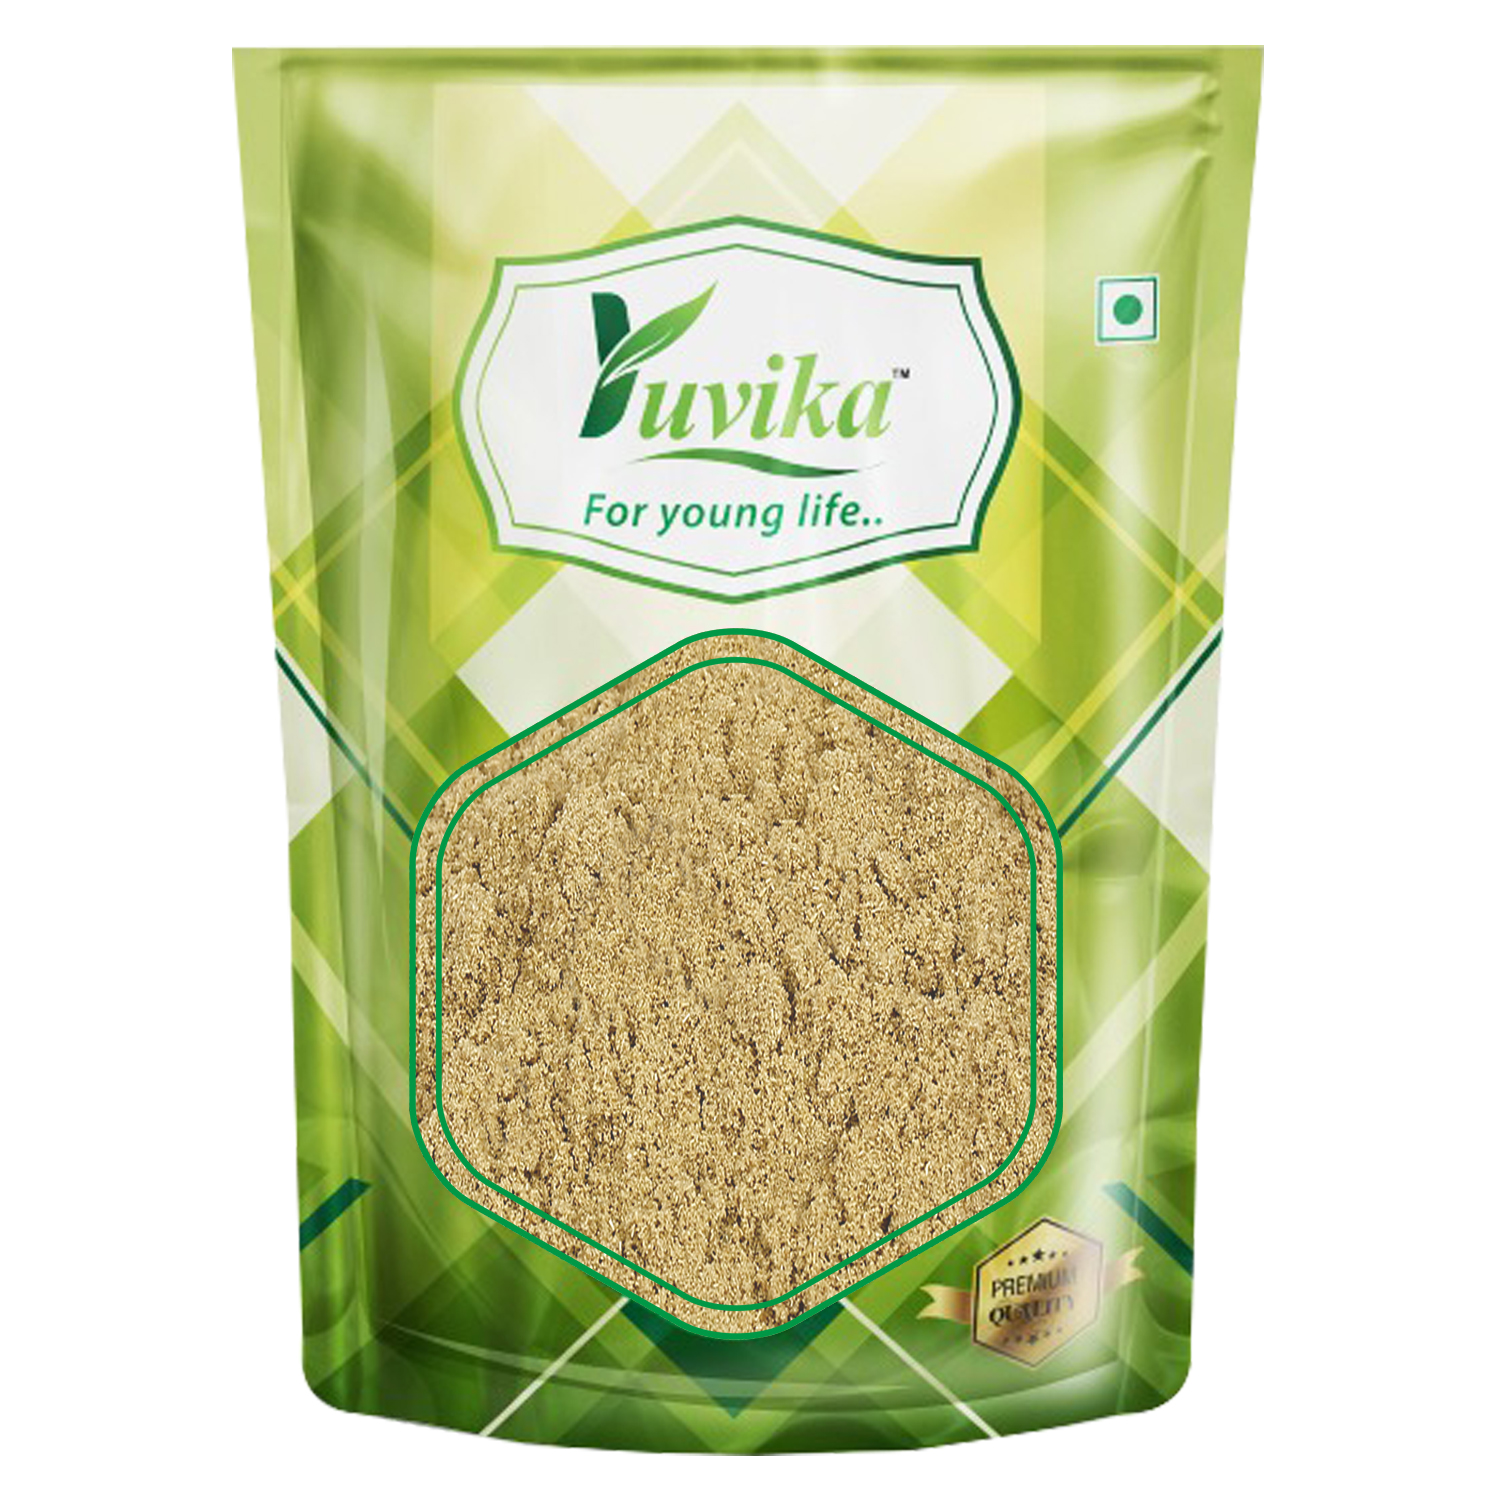 YUVIKA Bel Patta Powder - Bel Patra Powder - Bilva Bel Leaf - Aegle Marmelos Powder